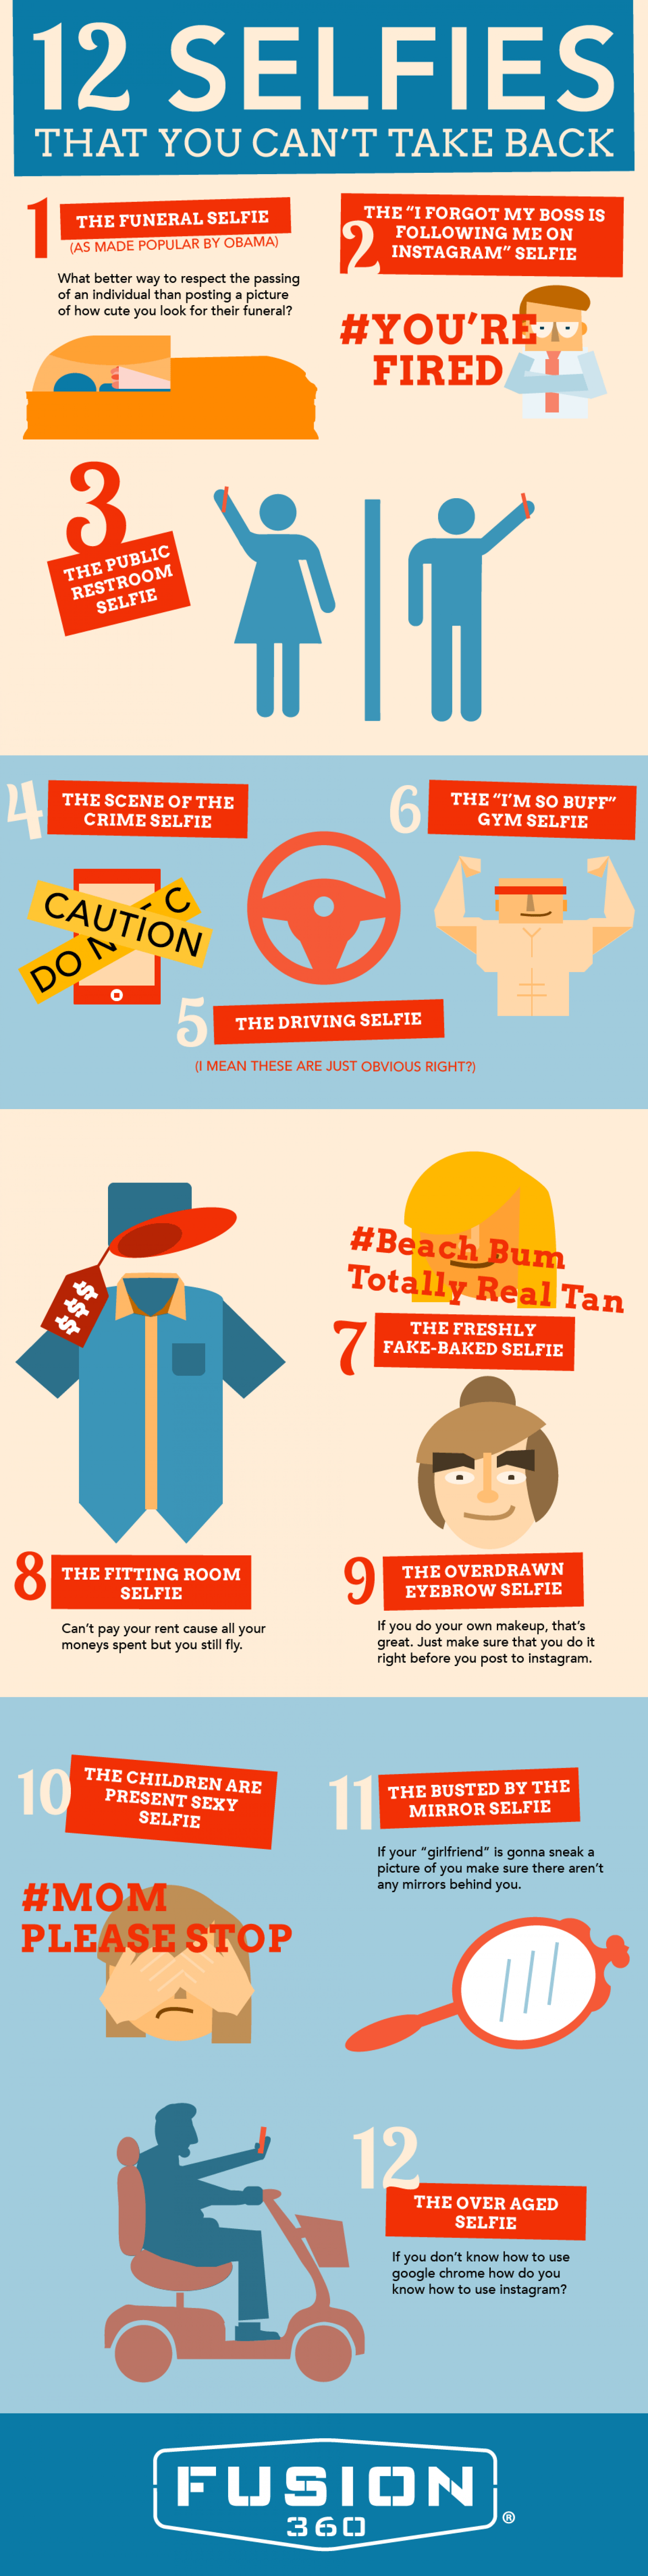 12 Selfies That You Can't Take Back Infographic